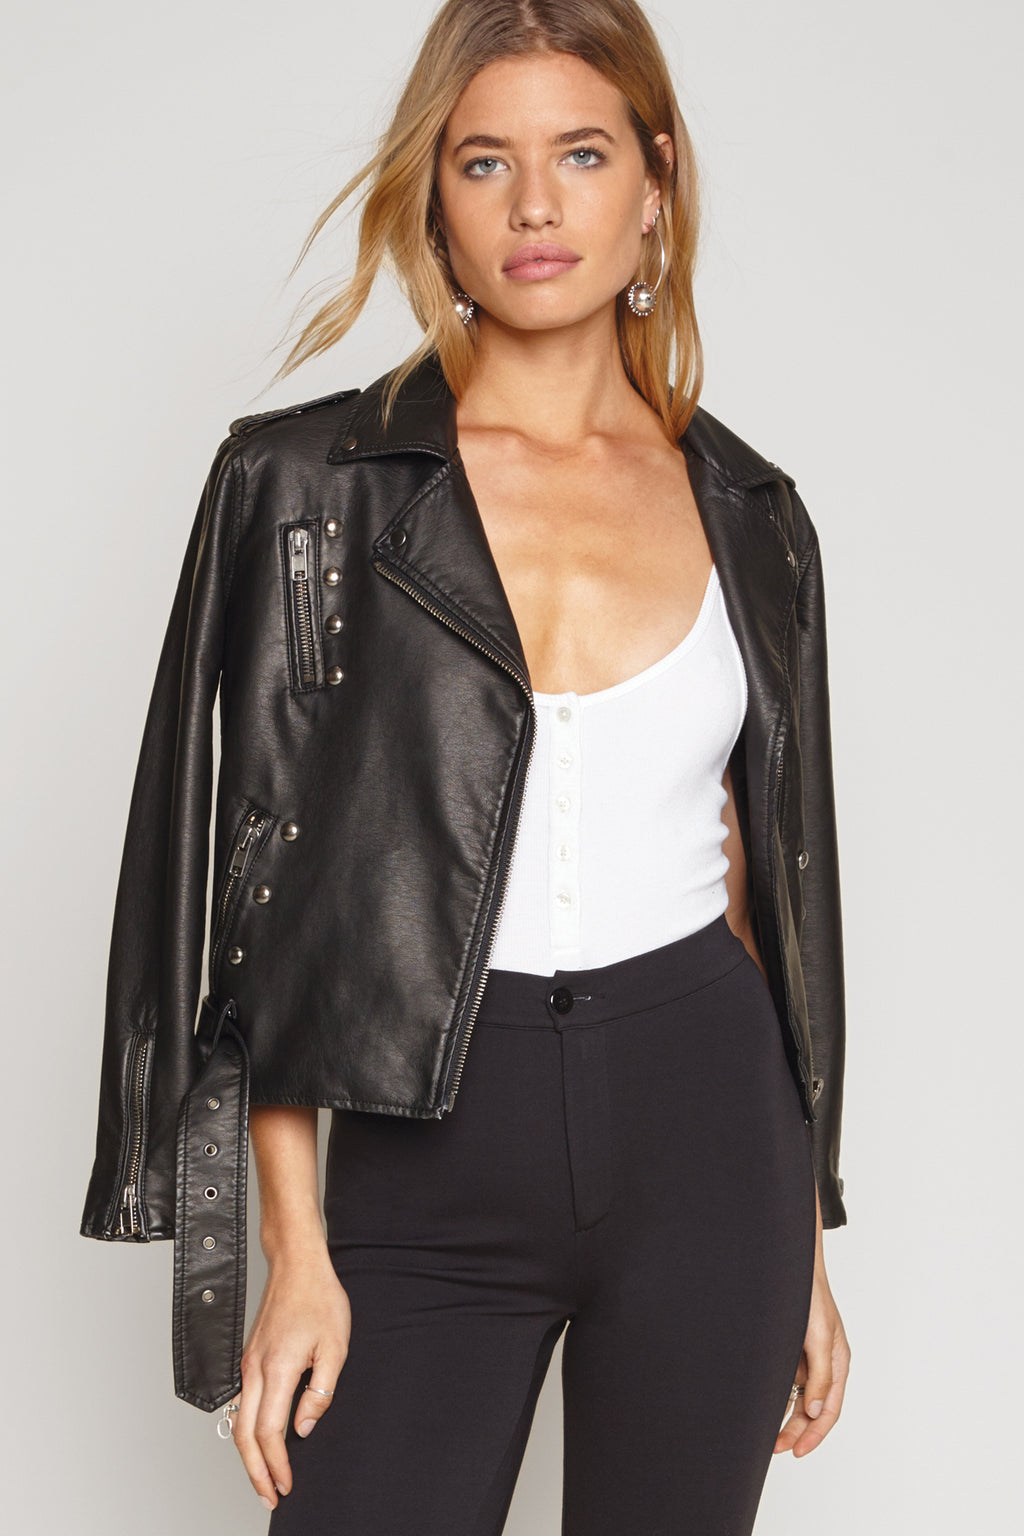 Black Leather Bomber Jacket from Amuse Society